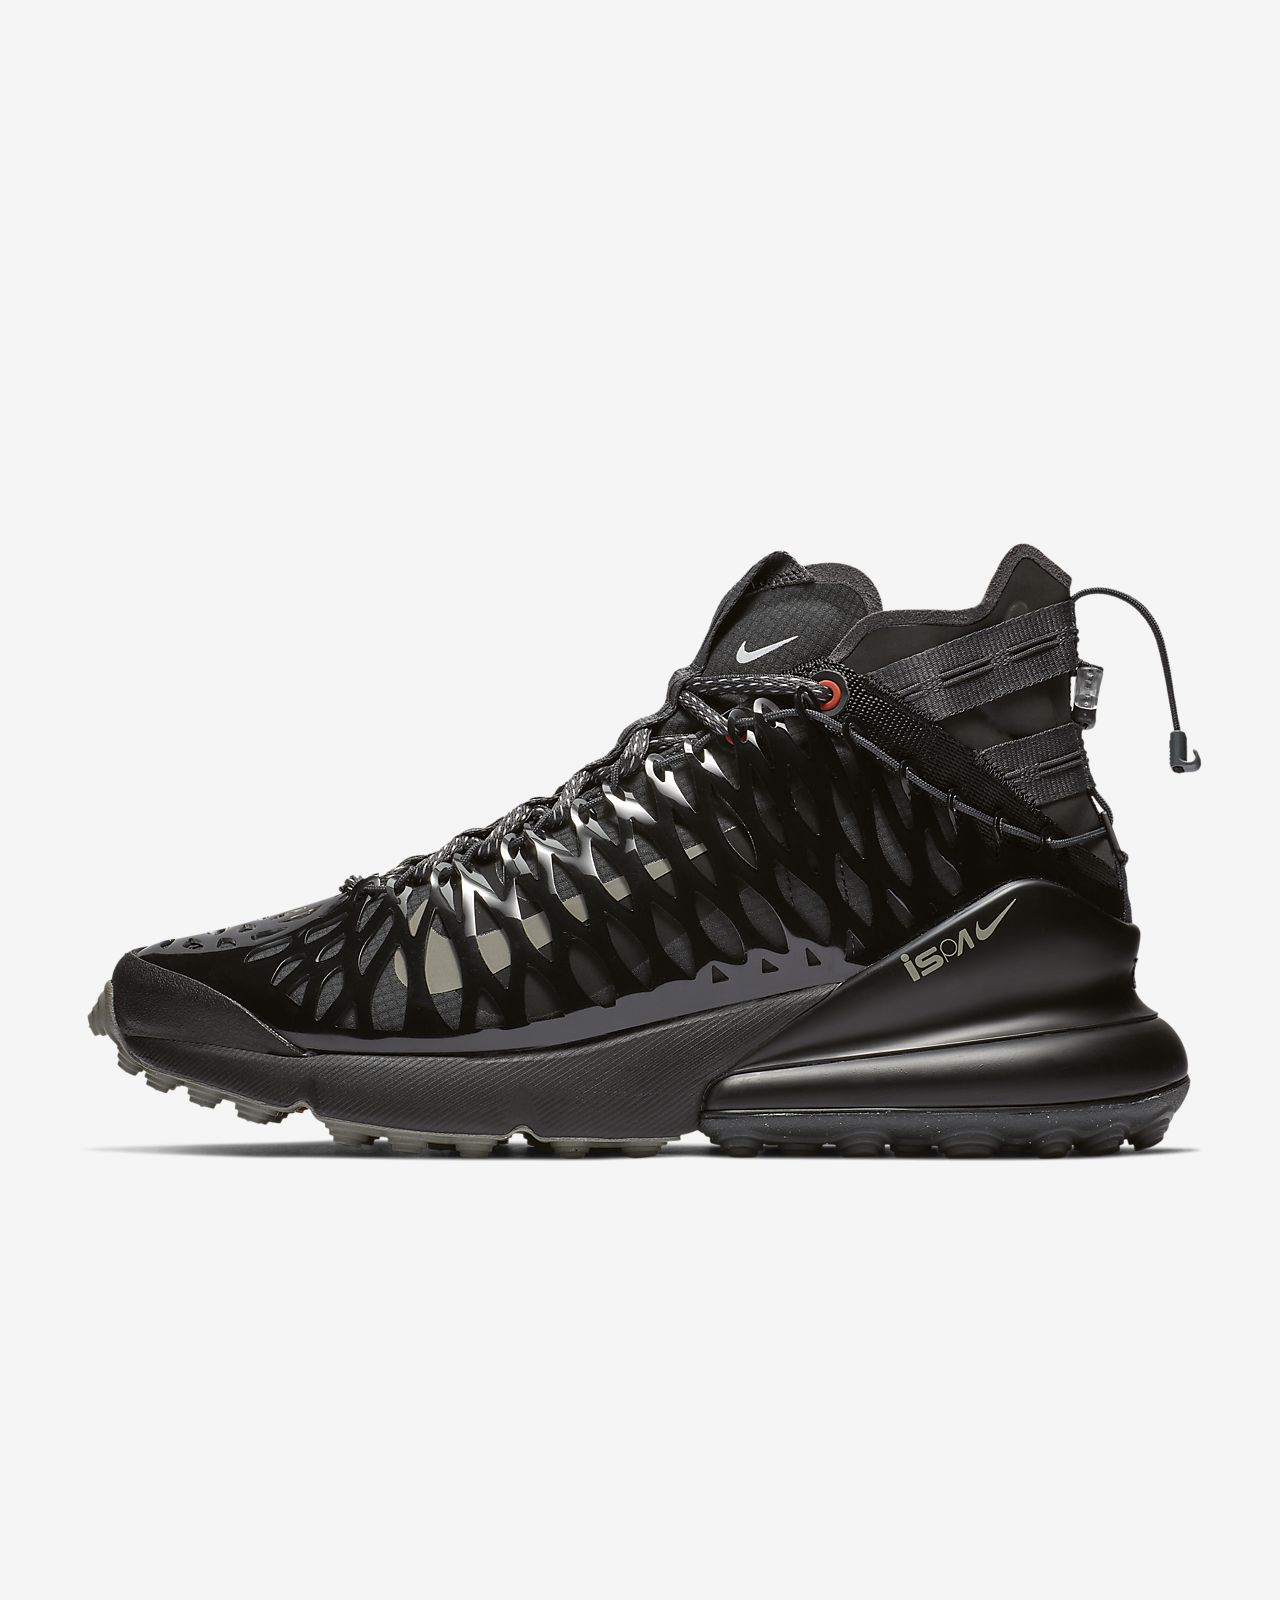 404fe2ca5f66 Nike Air Max 270 ISPA Men s Shoe. Nike.com